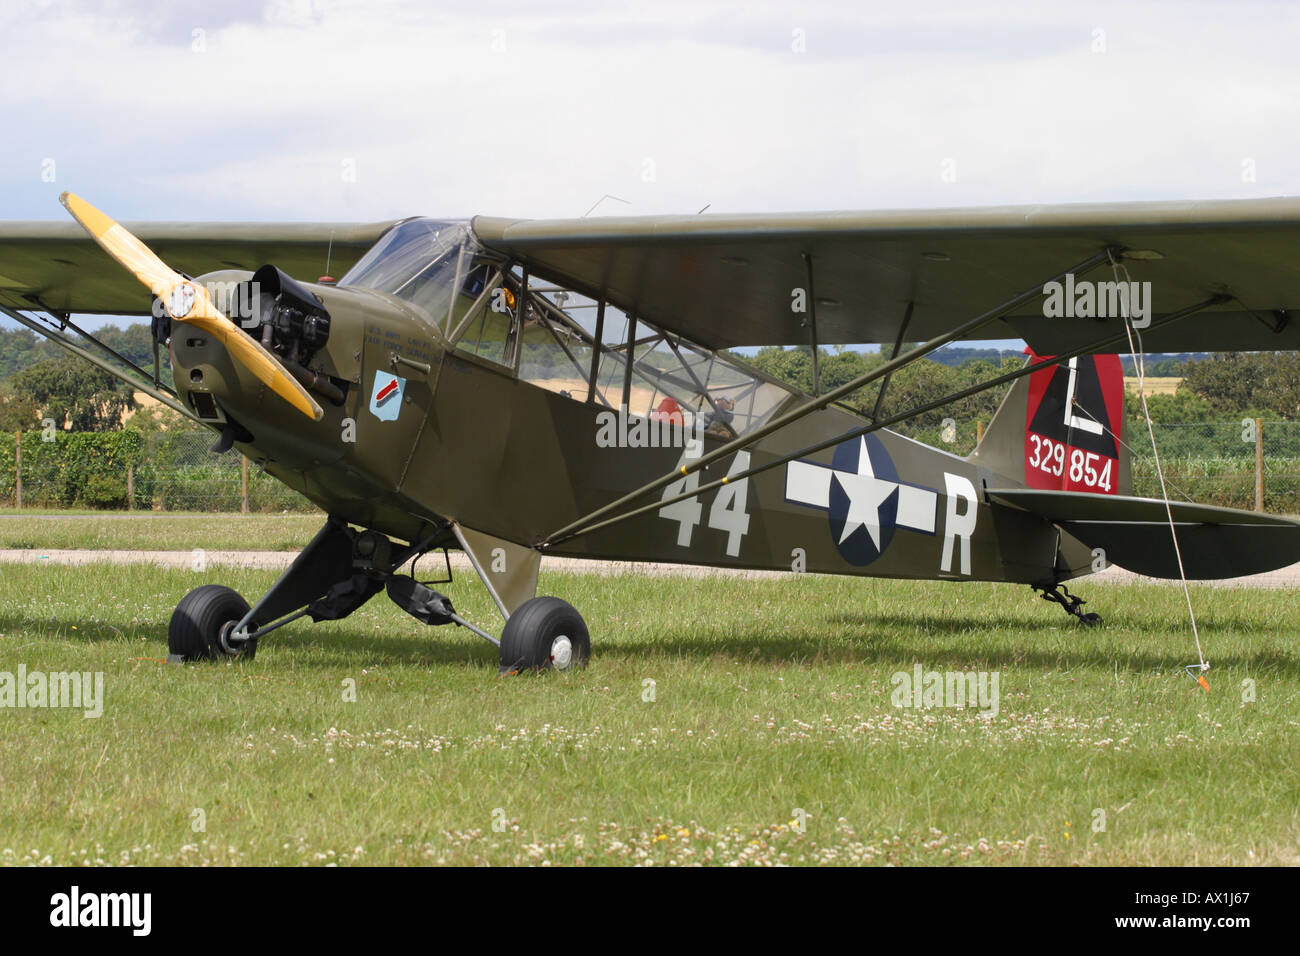 Piper Cub L 4 Vintage Warbird World War 2 Us Army Observation Spotter Stock Photo Royalty Free